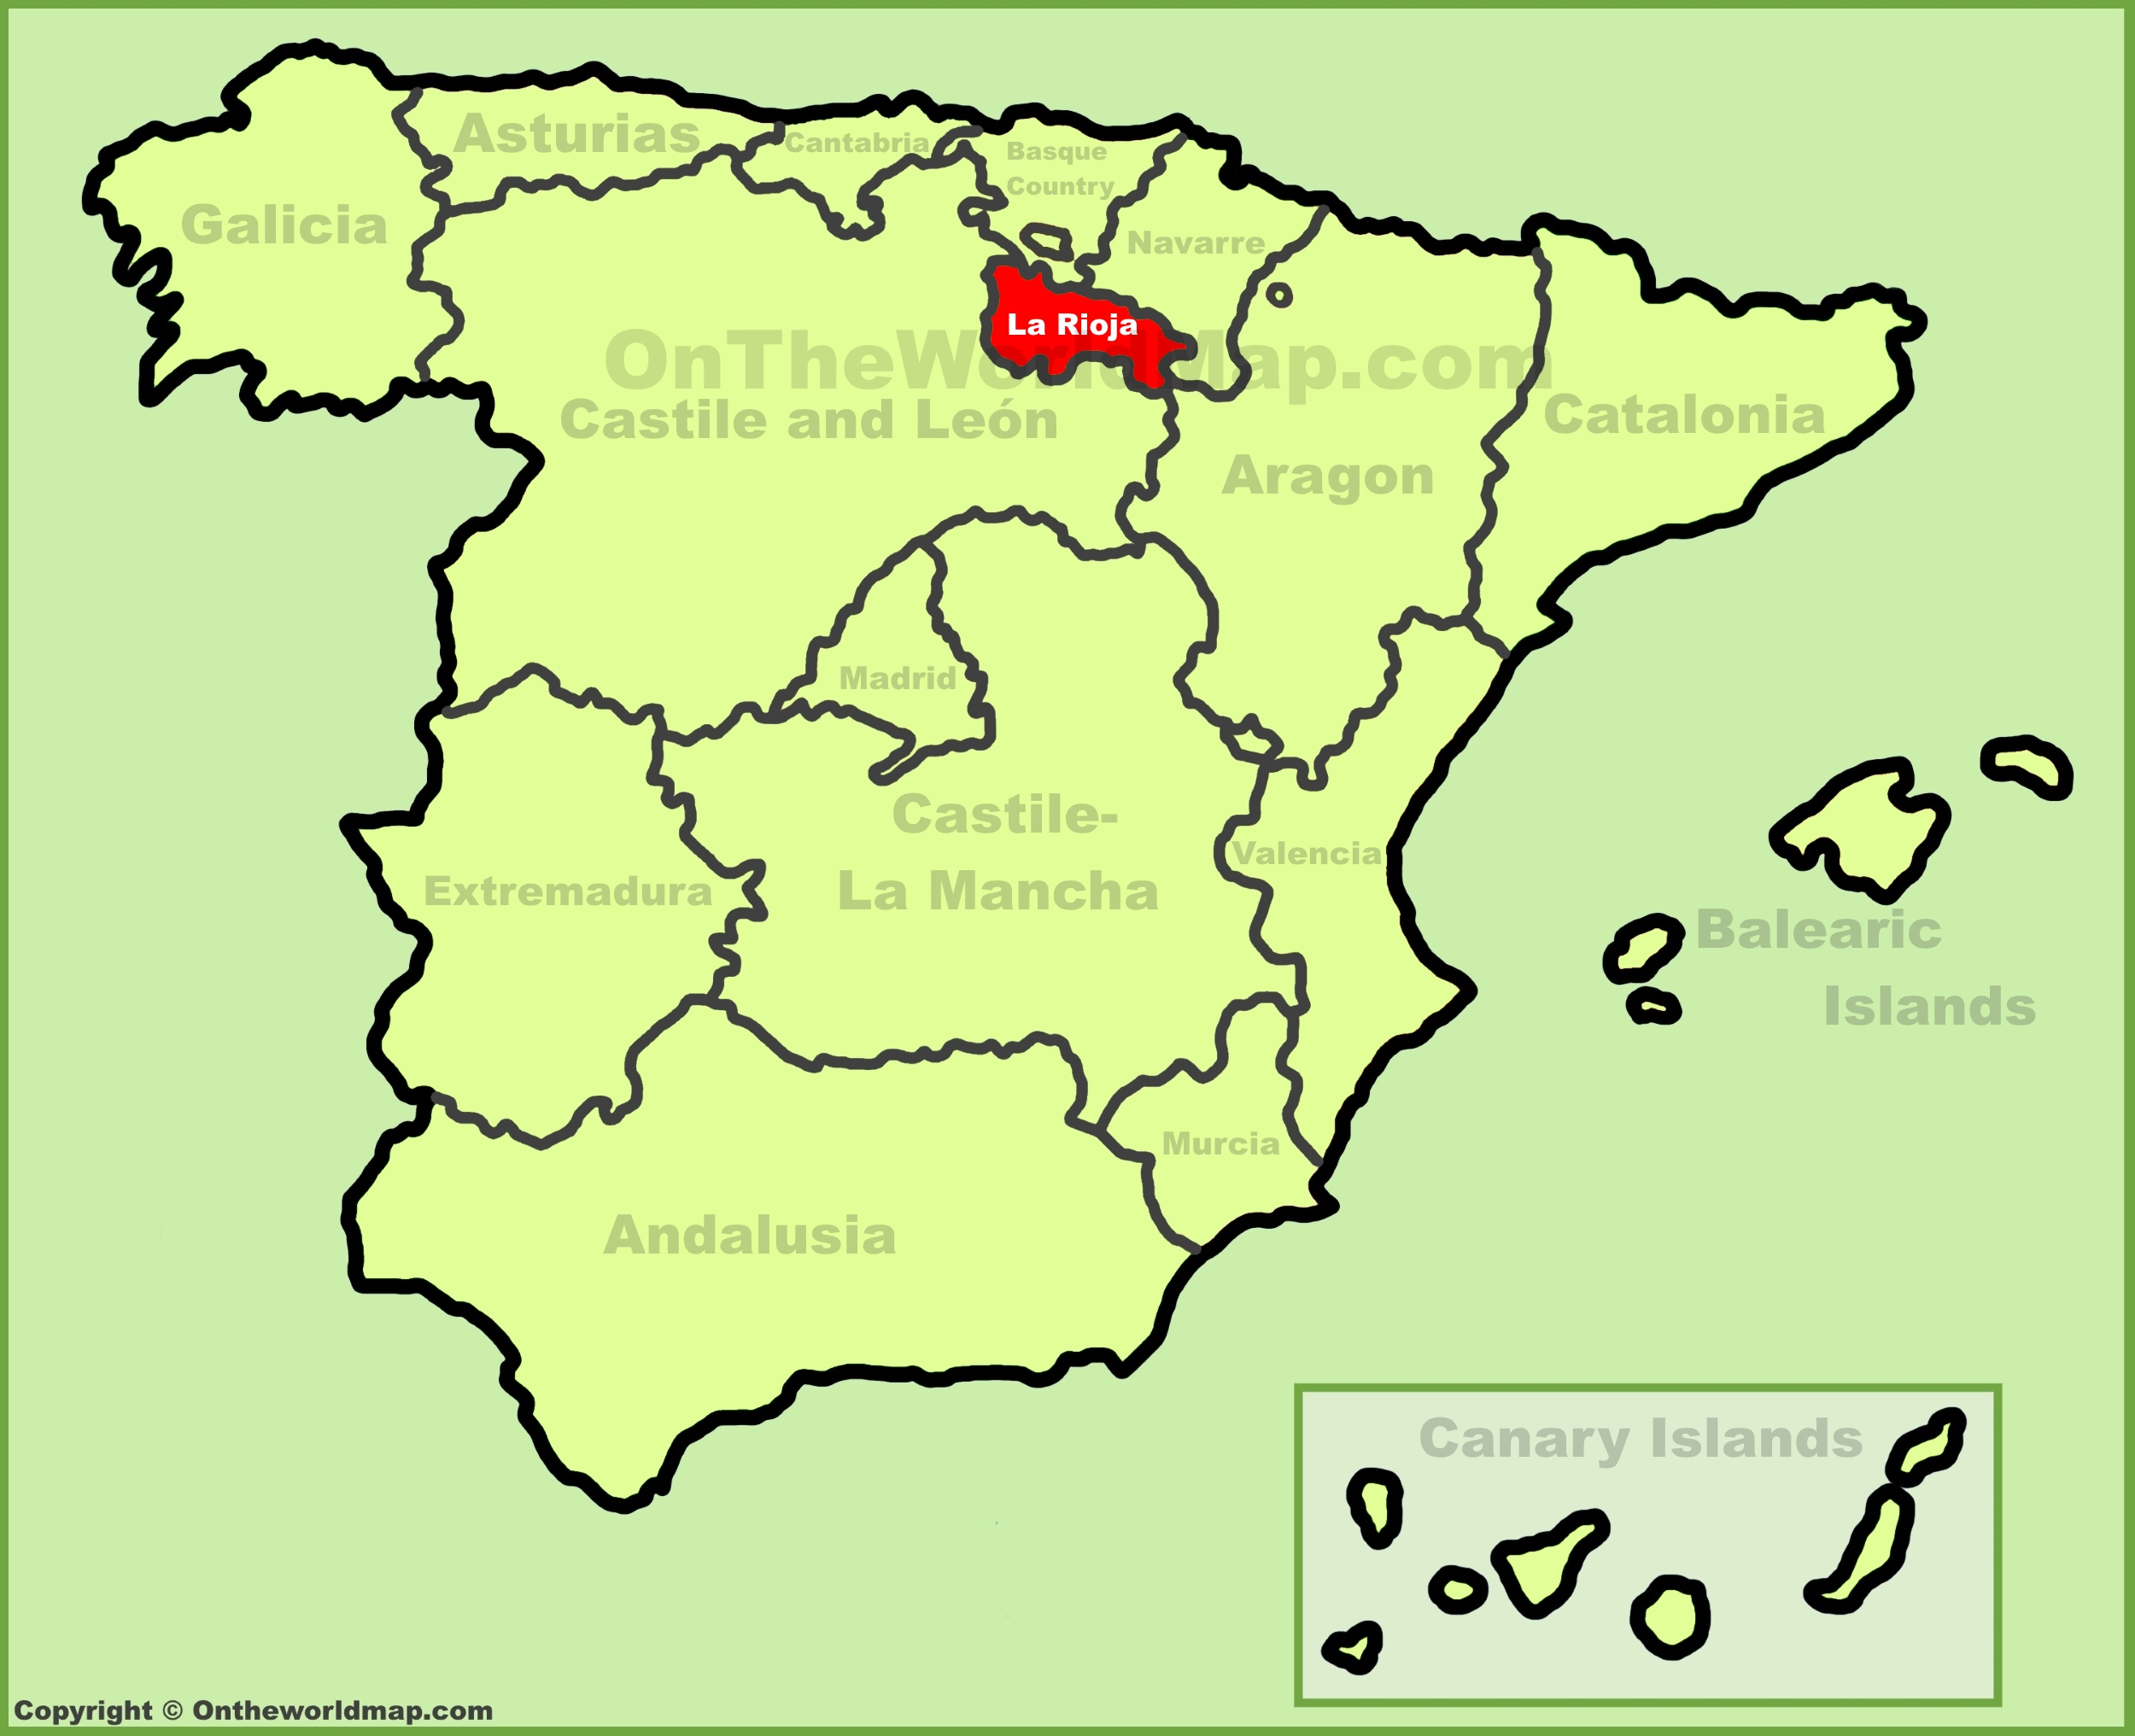 La Rioja location on the Spain map